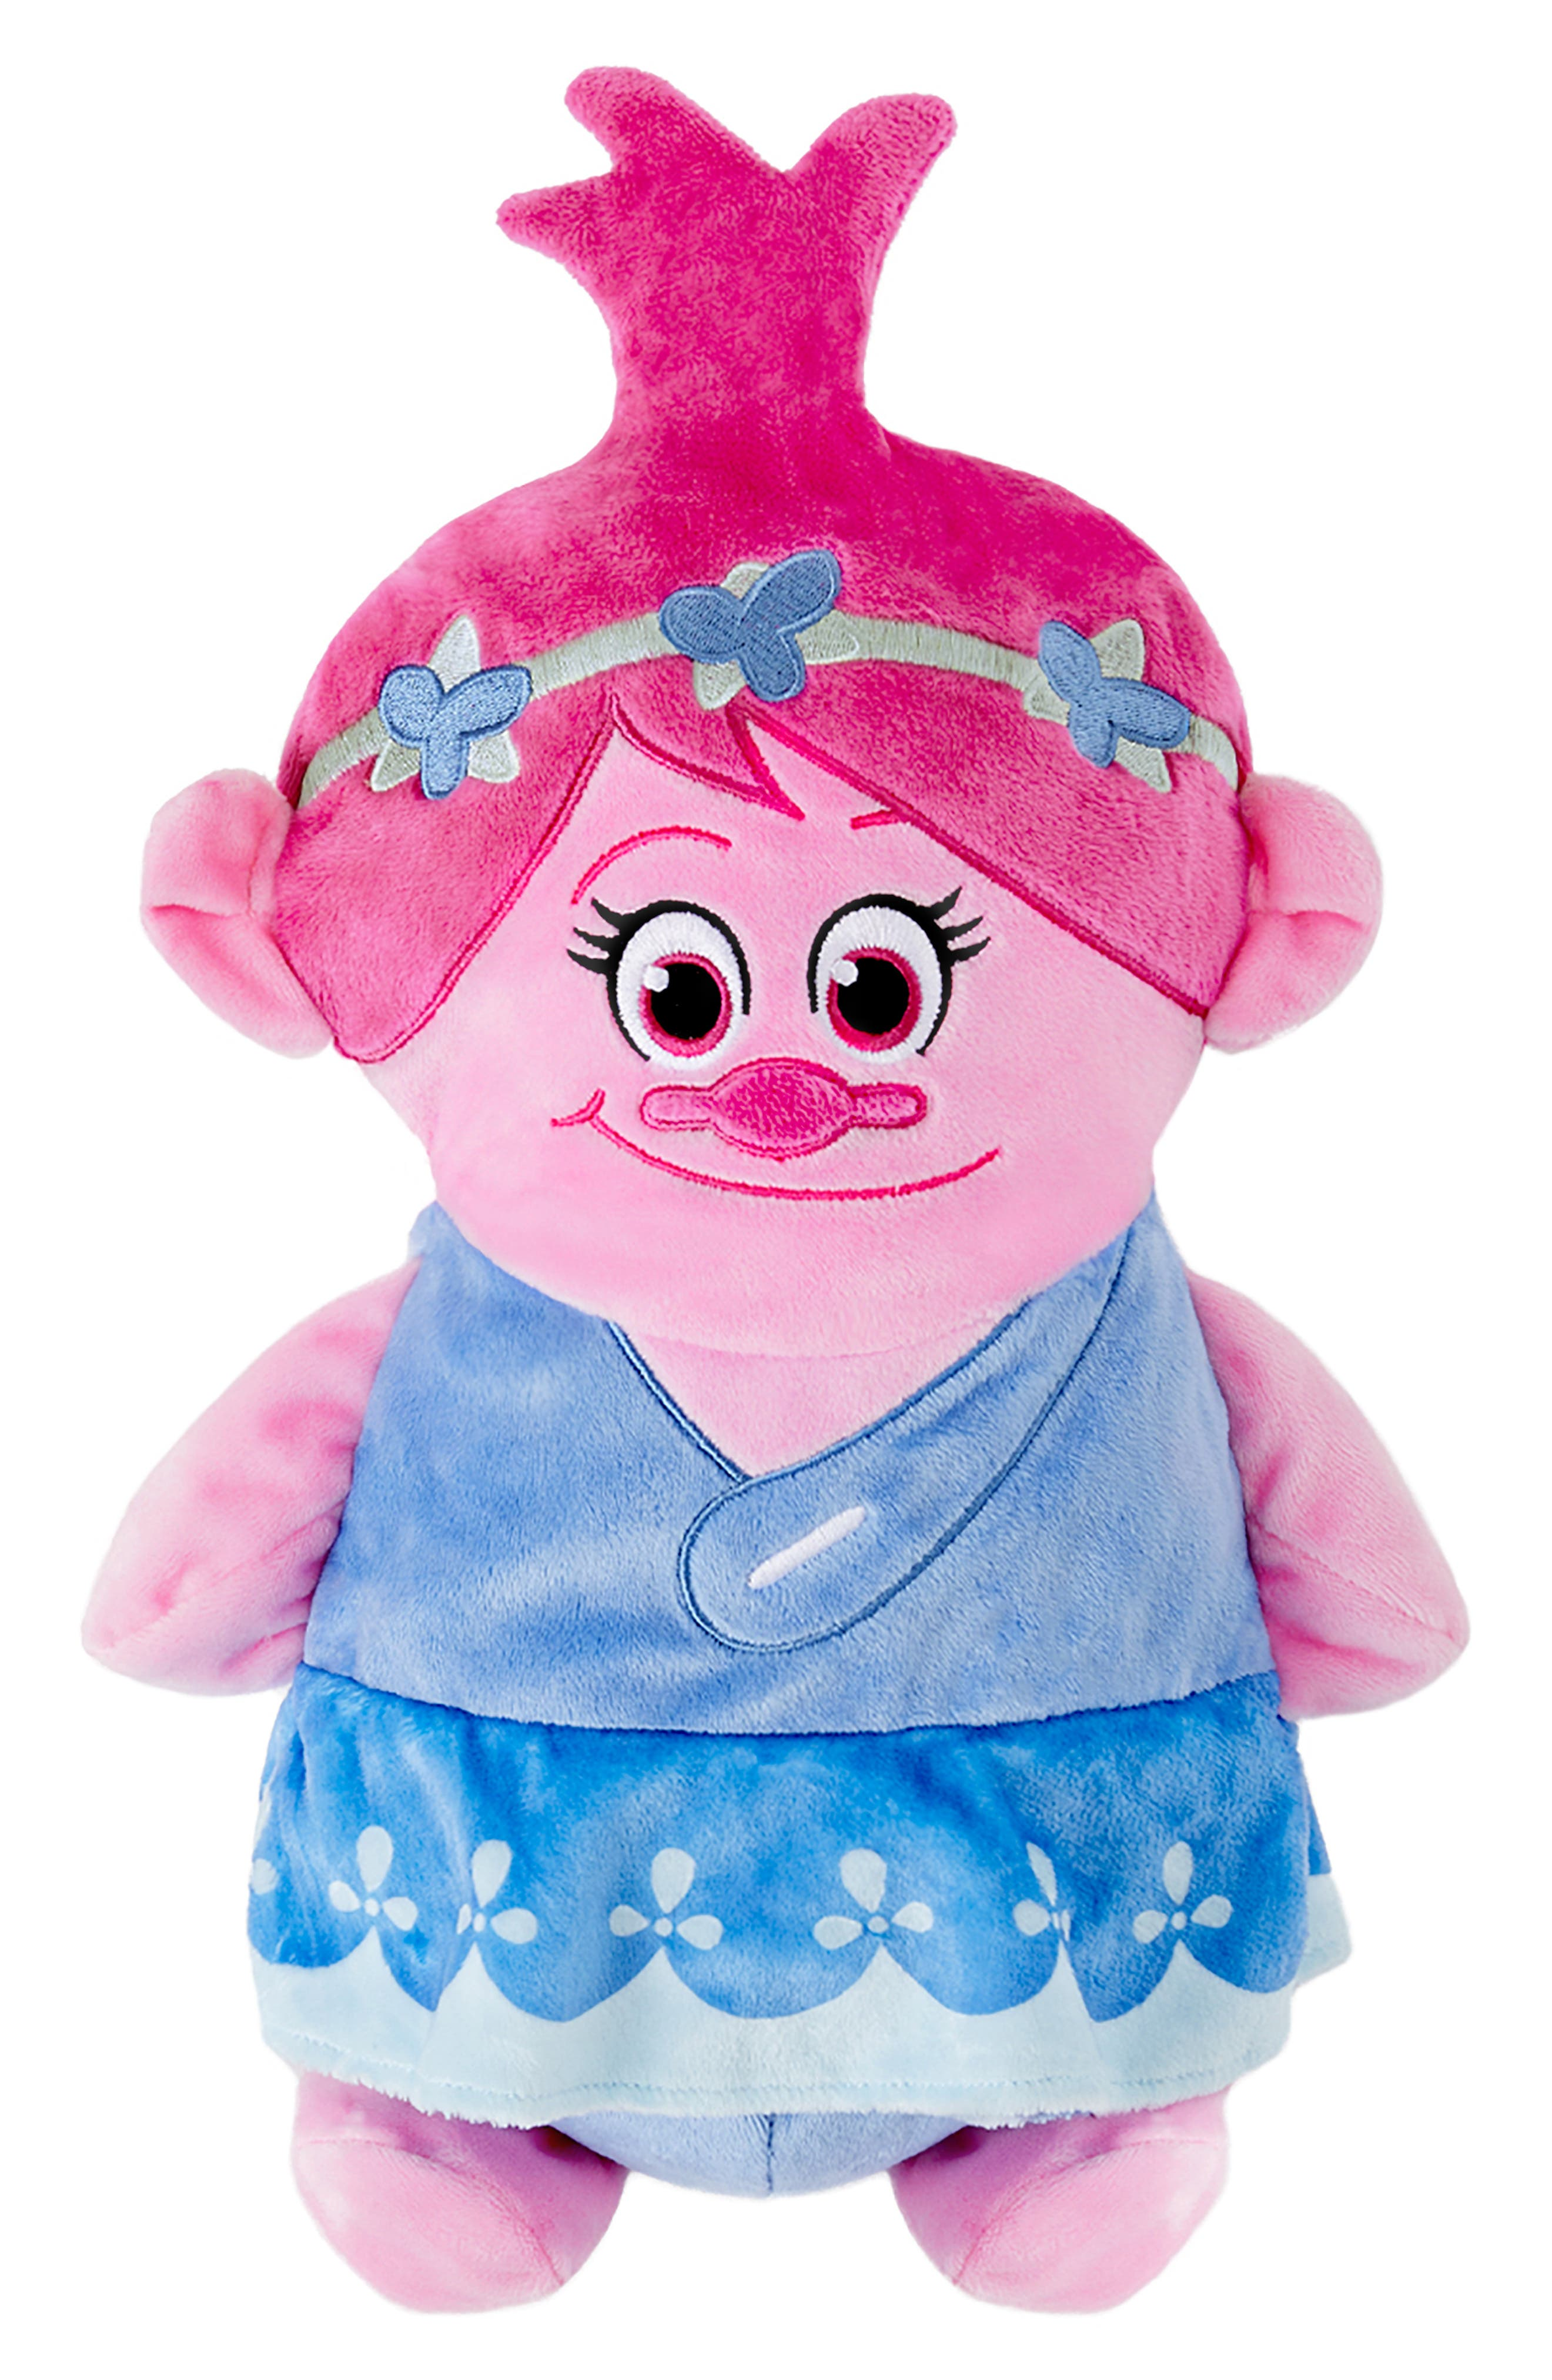 CUBCOATS DreamWorks Trolls Poppy 2-in-1 Stuffed Animal Hoodie, Main, color, PINK MIX